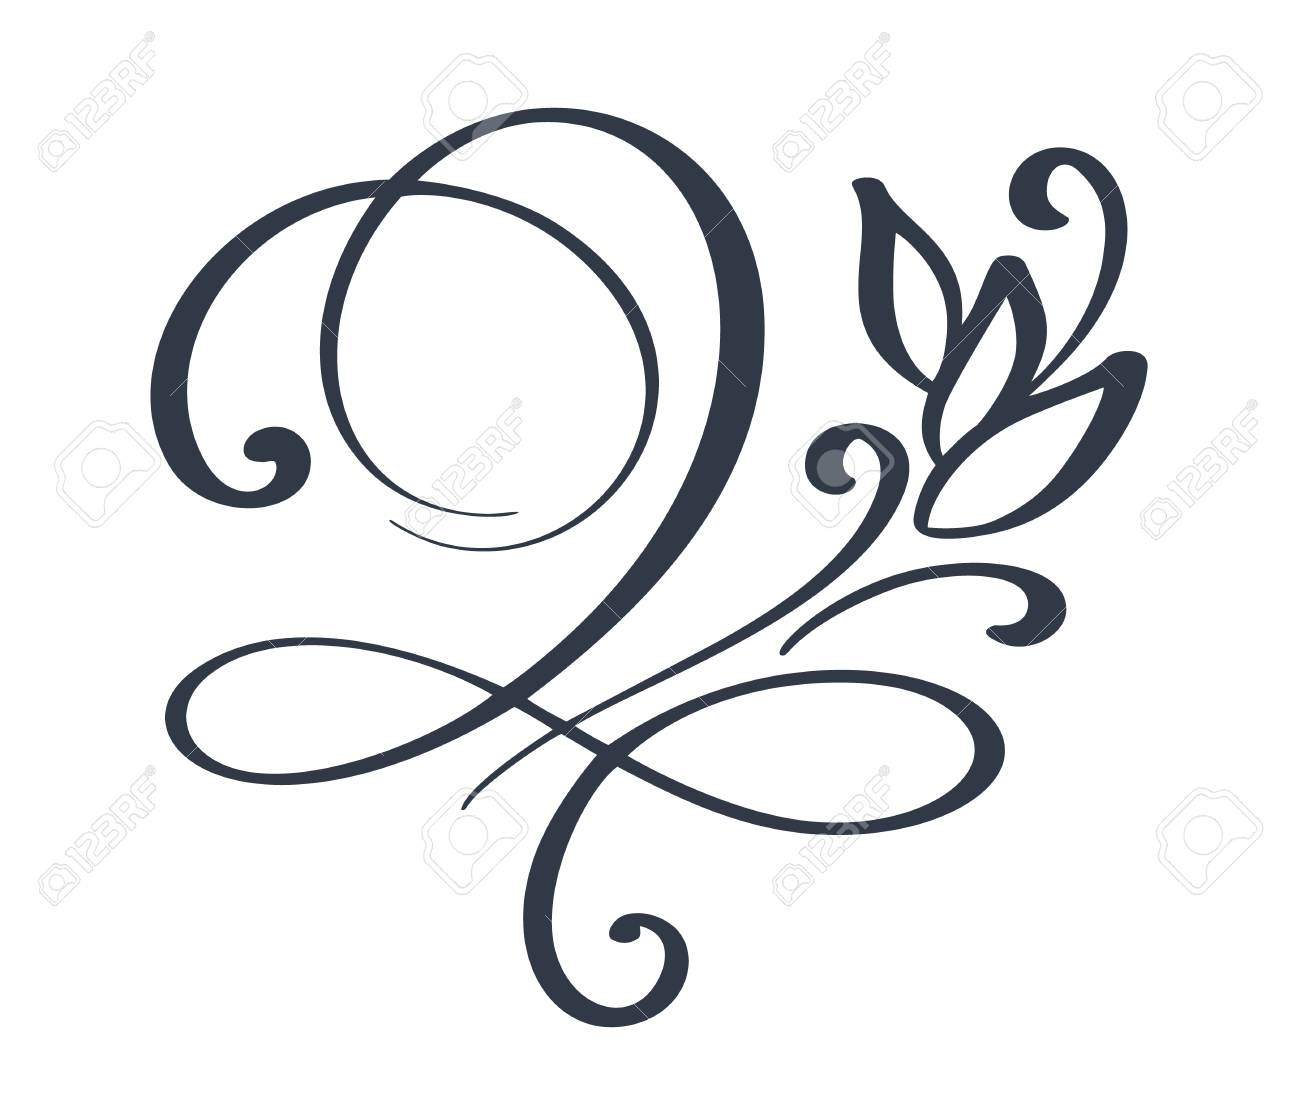 flourish swirl ornate decoration for pointed pen ink calligraphy rh 123rf com flourish vectors png corner flourish vectors